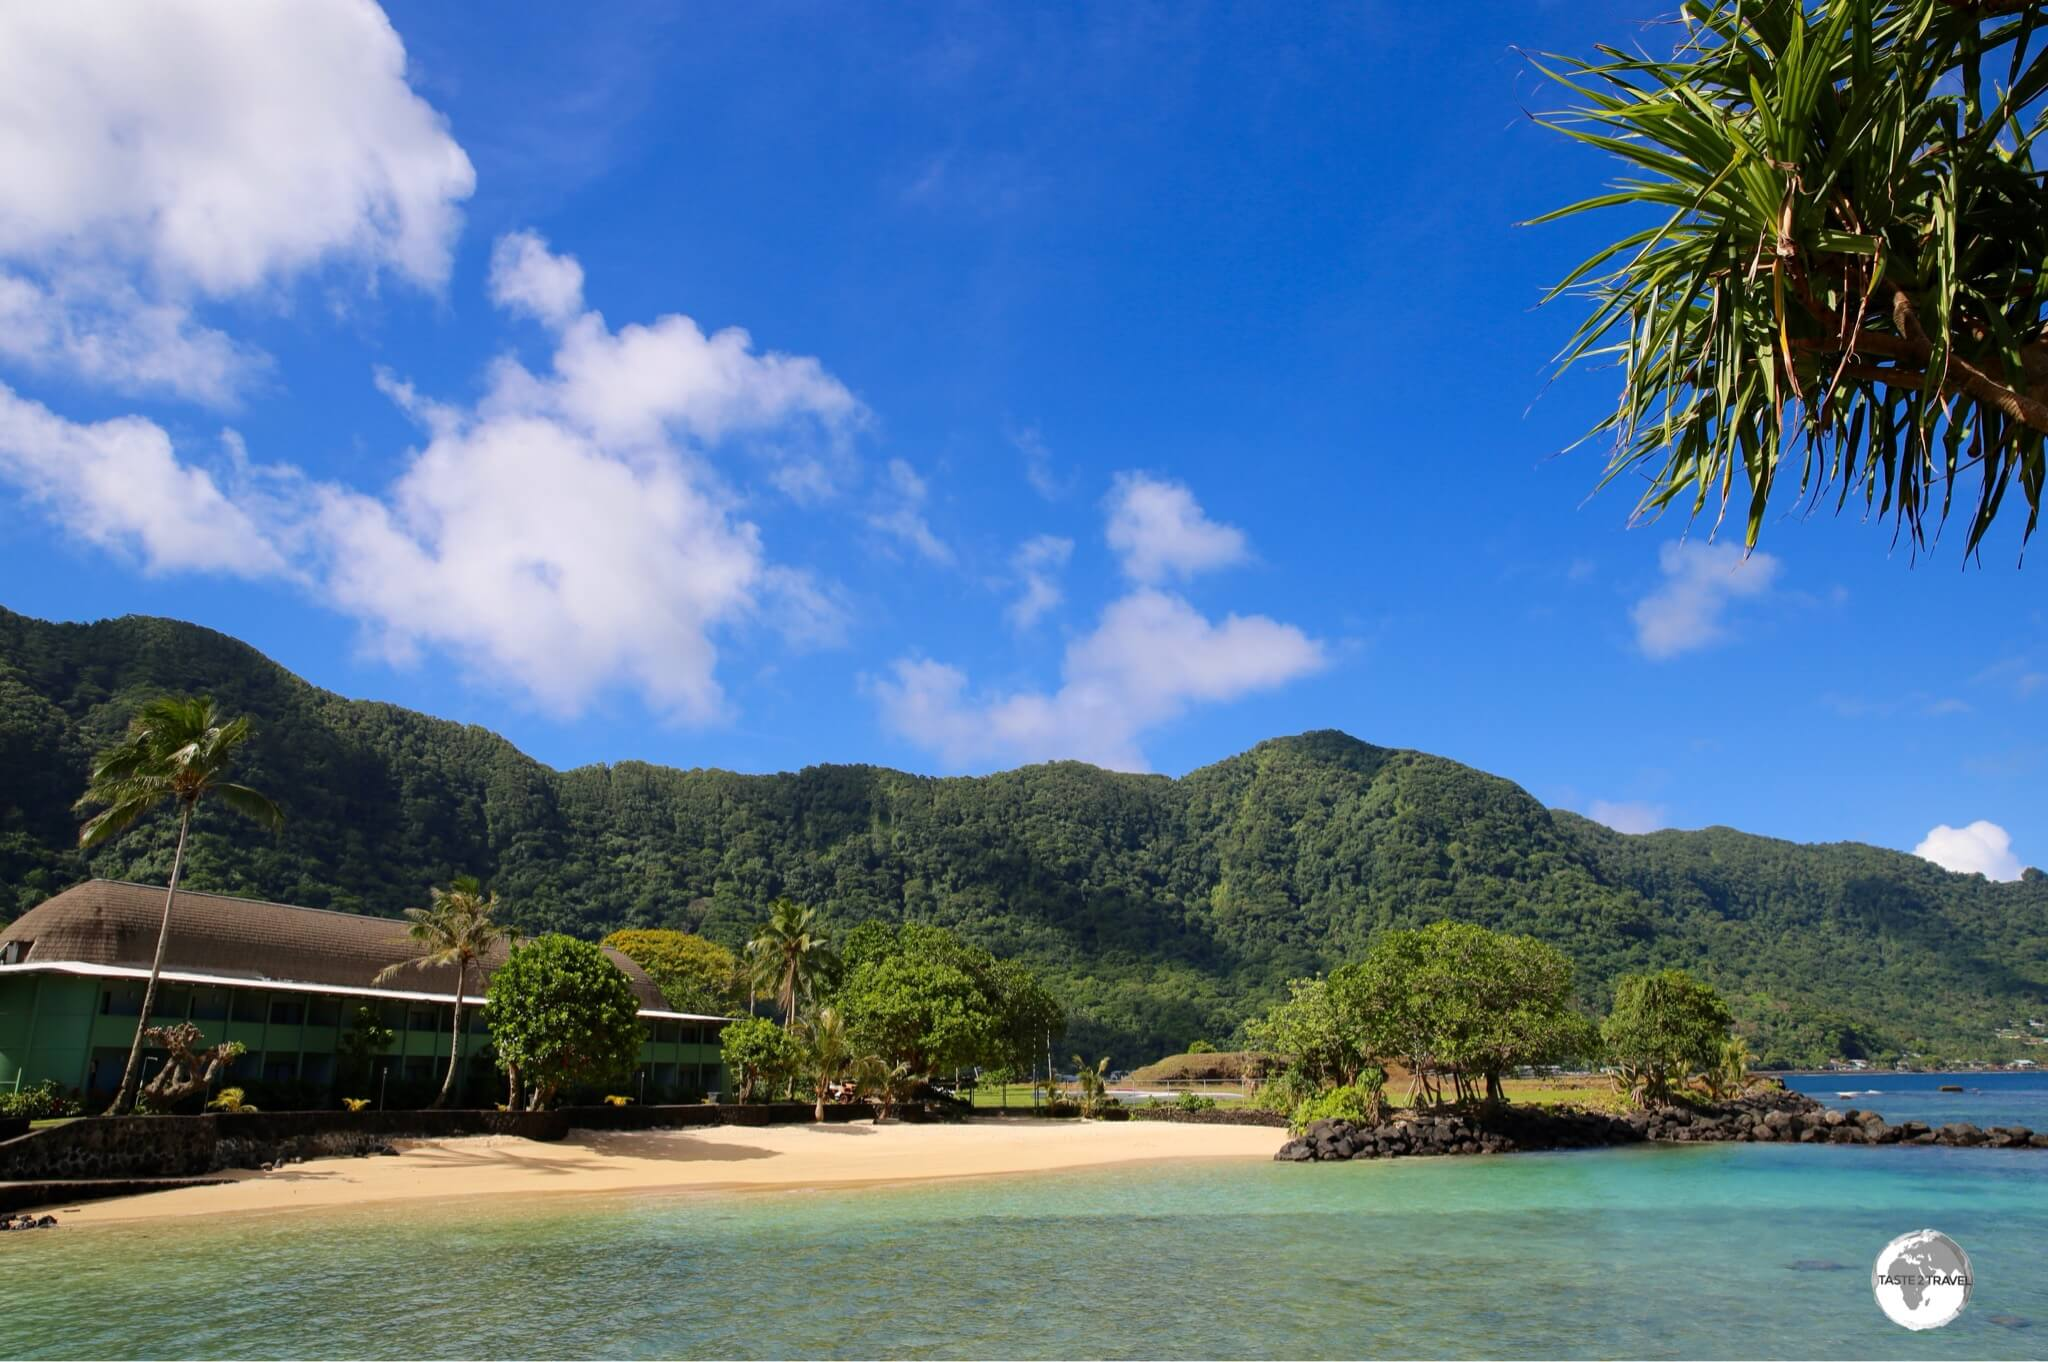 While in American Samoa, I stayed at 'Sadie's by the Sea'.